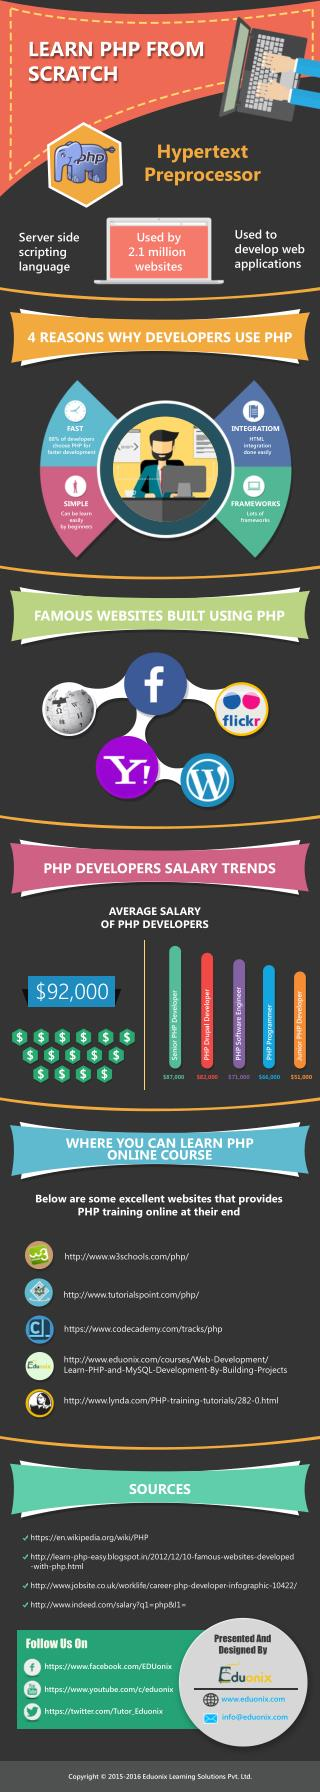 Learn PHP From Scratch Online! Enroll Now! ONLY $49! Use Coupon Code to avail 70% OFF!!